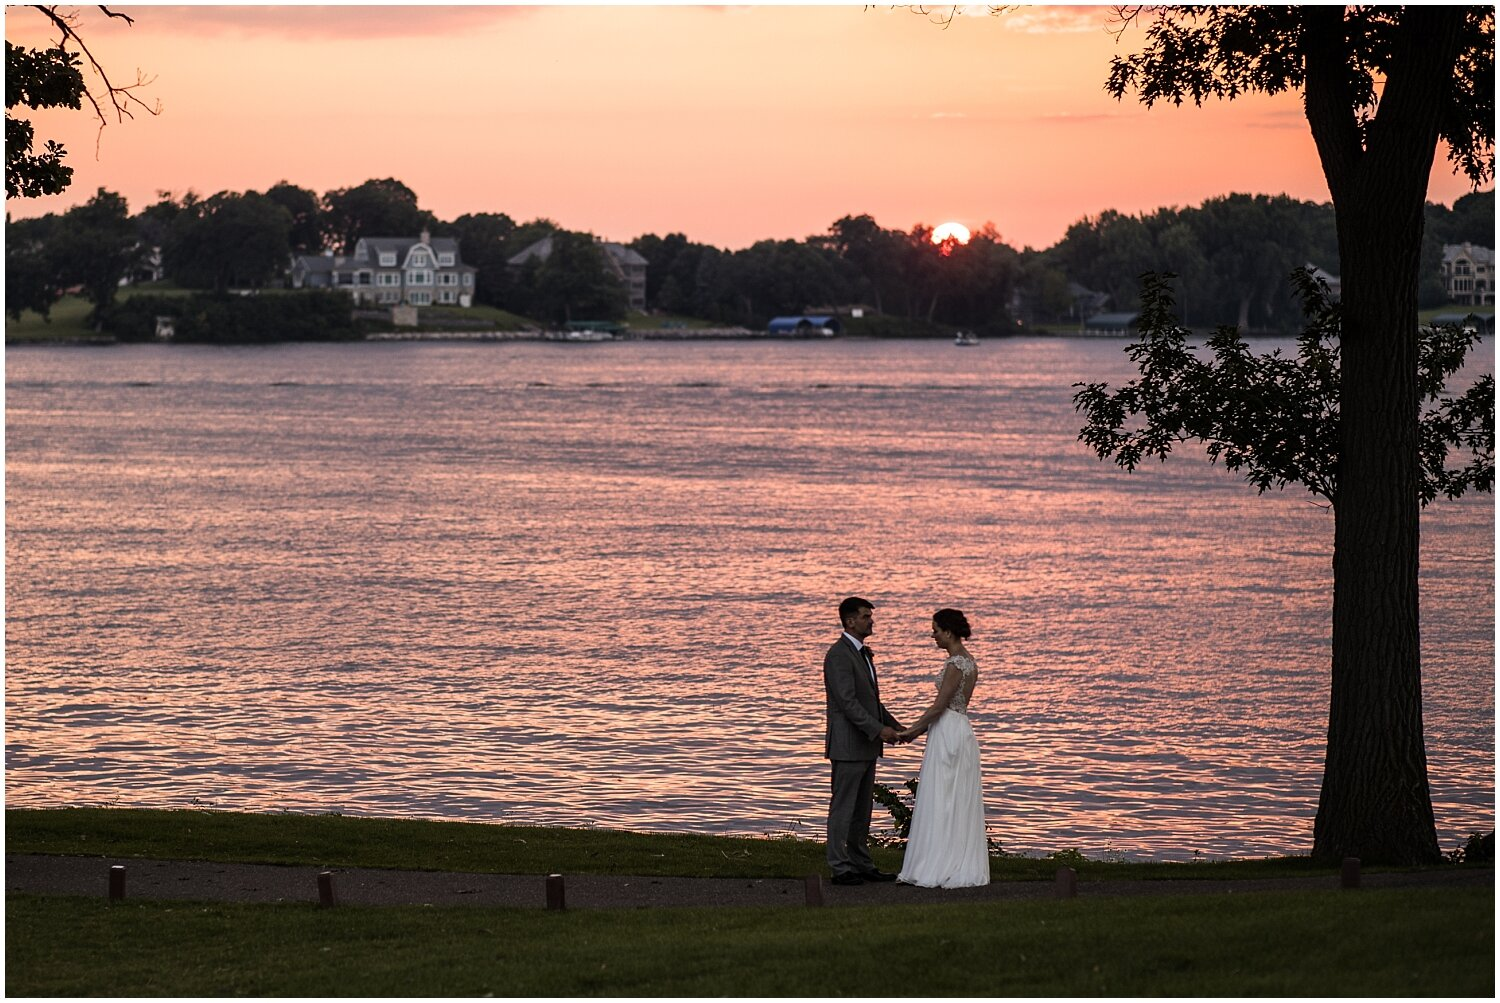 sunset photos with the bride and groom